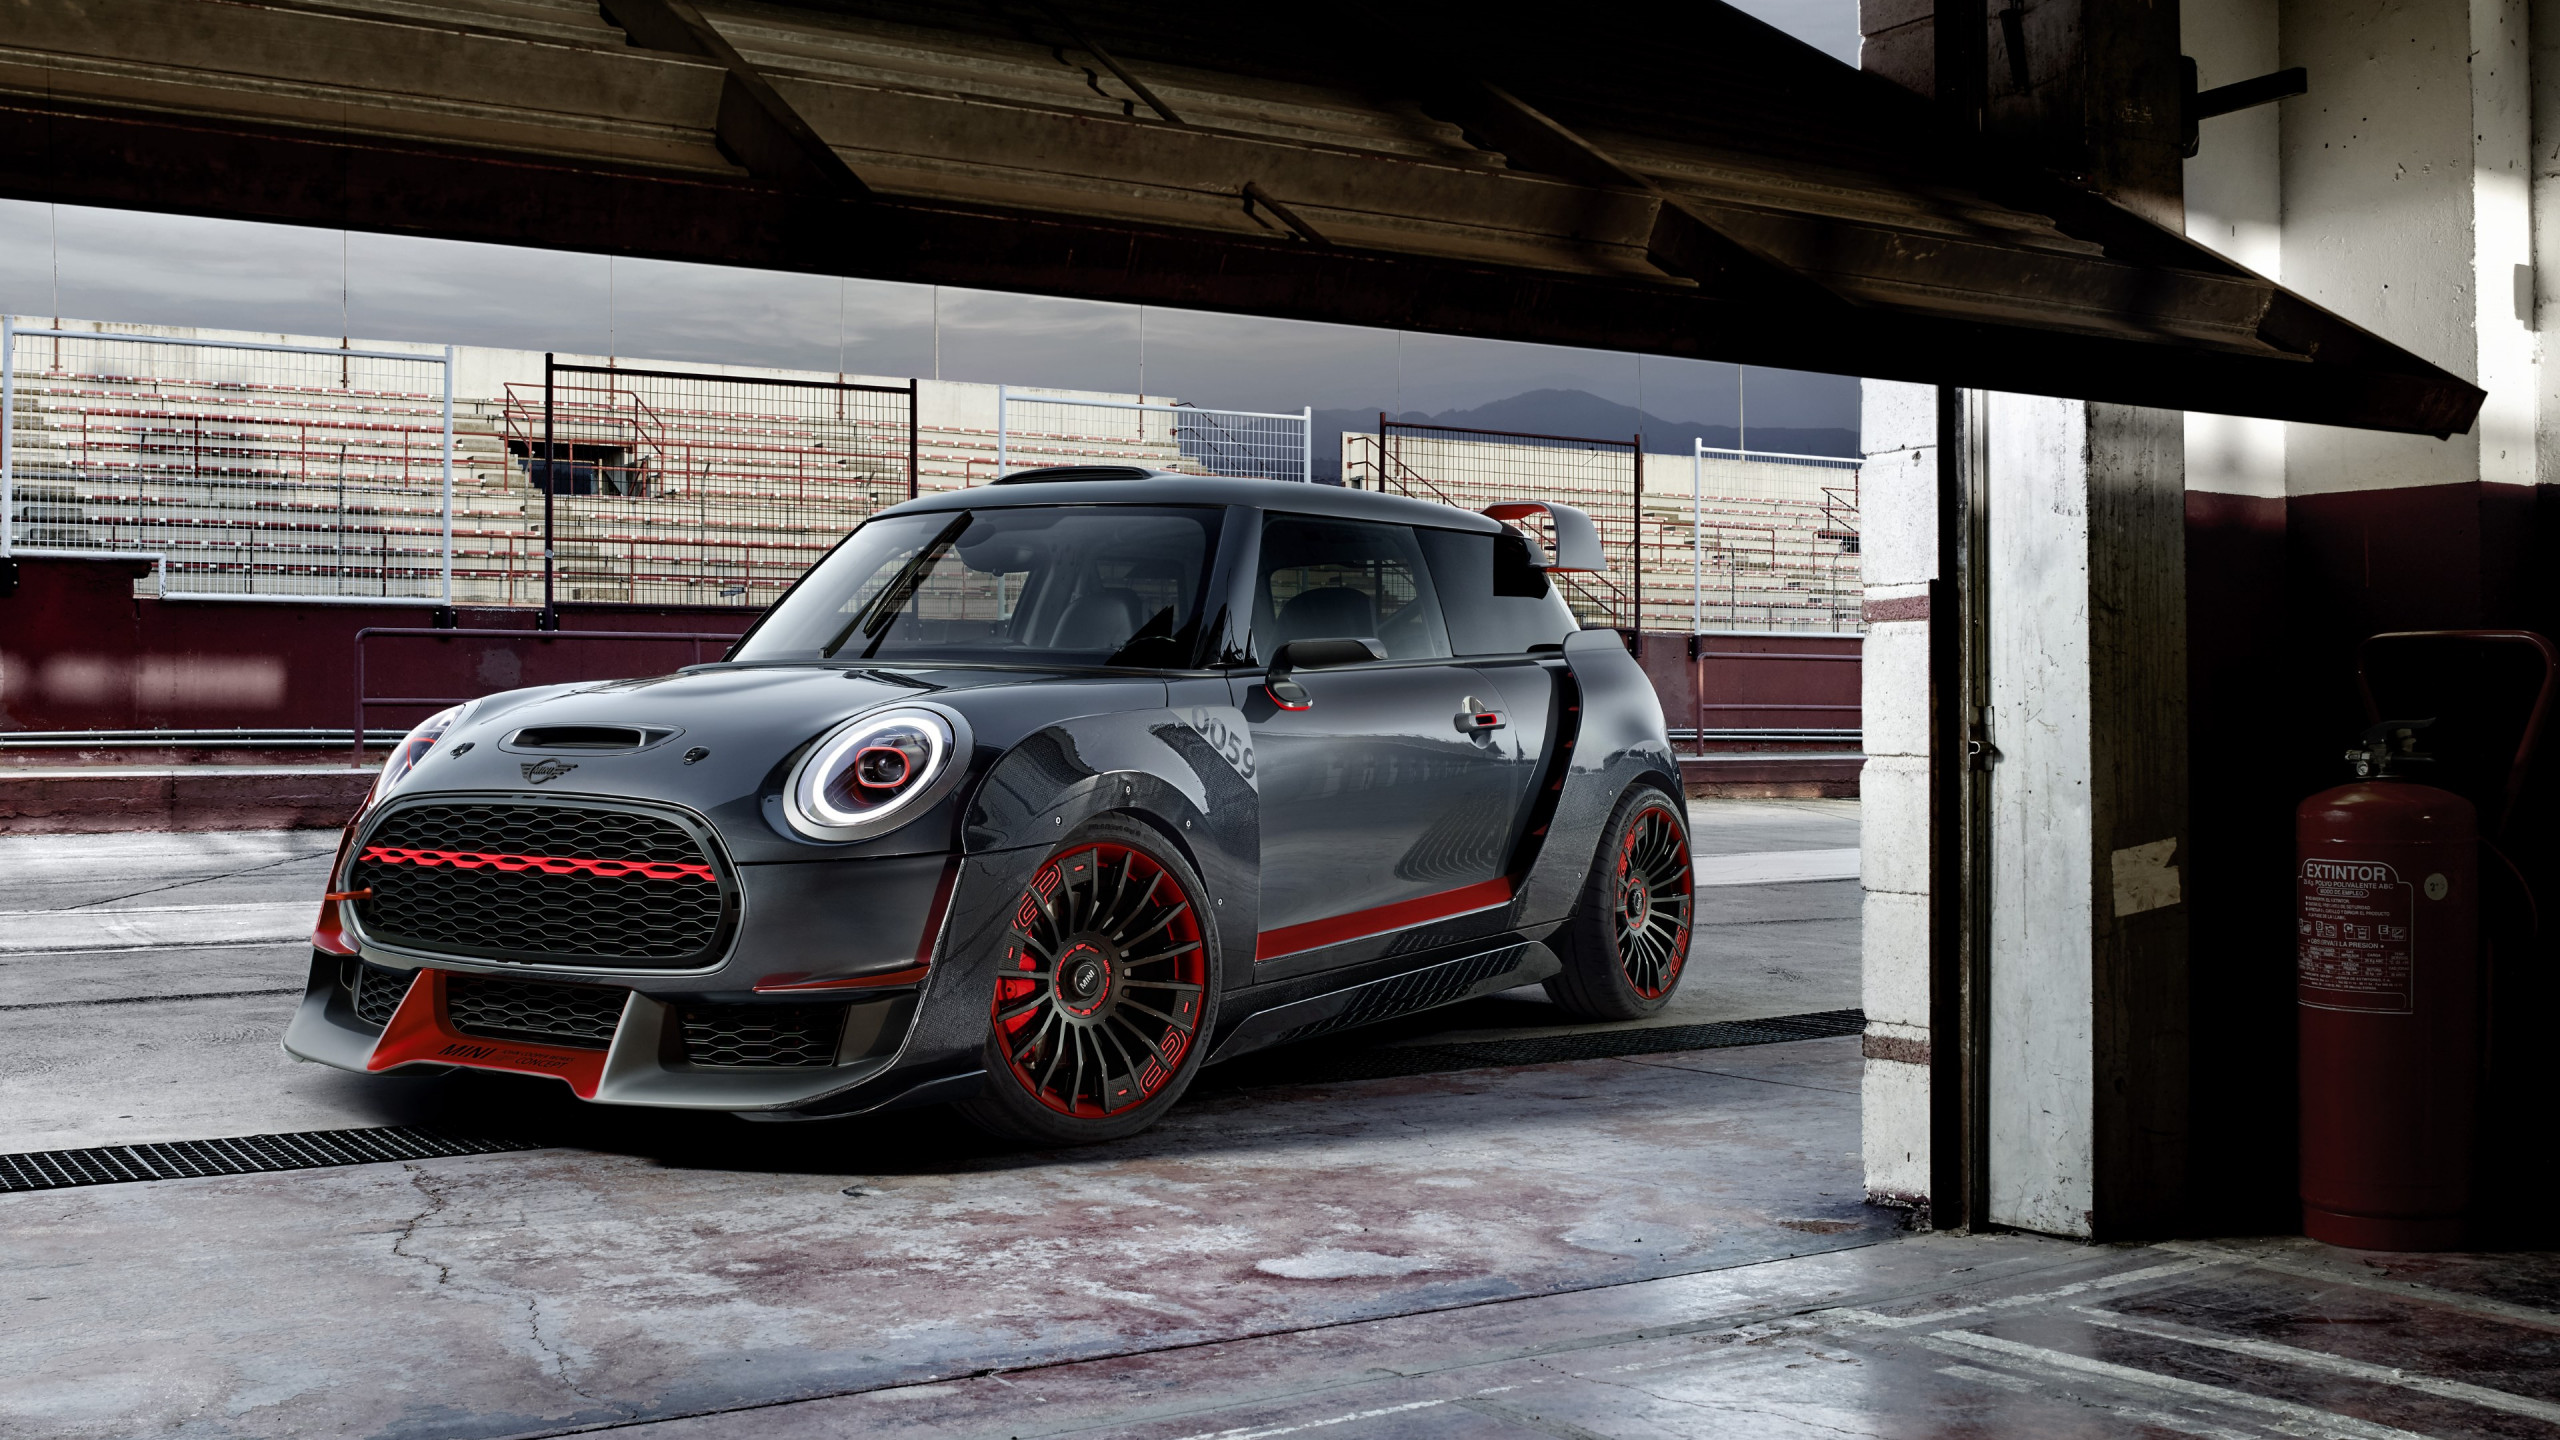 MINI John Cooper Works wallpaper 2560x1440